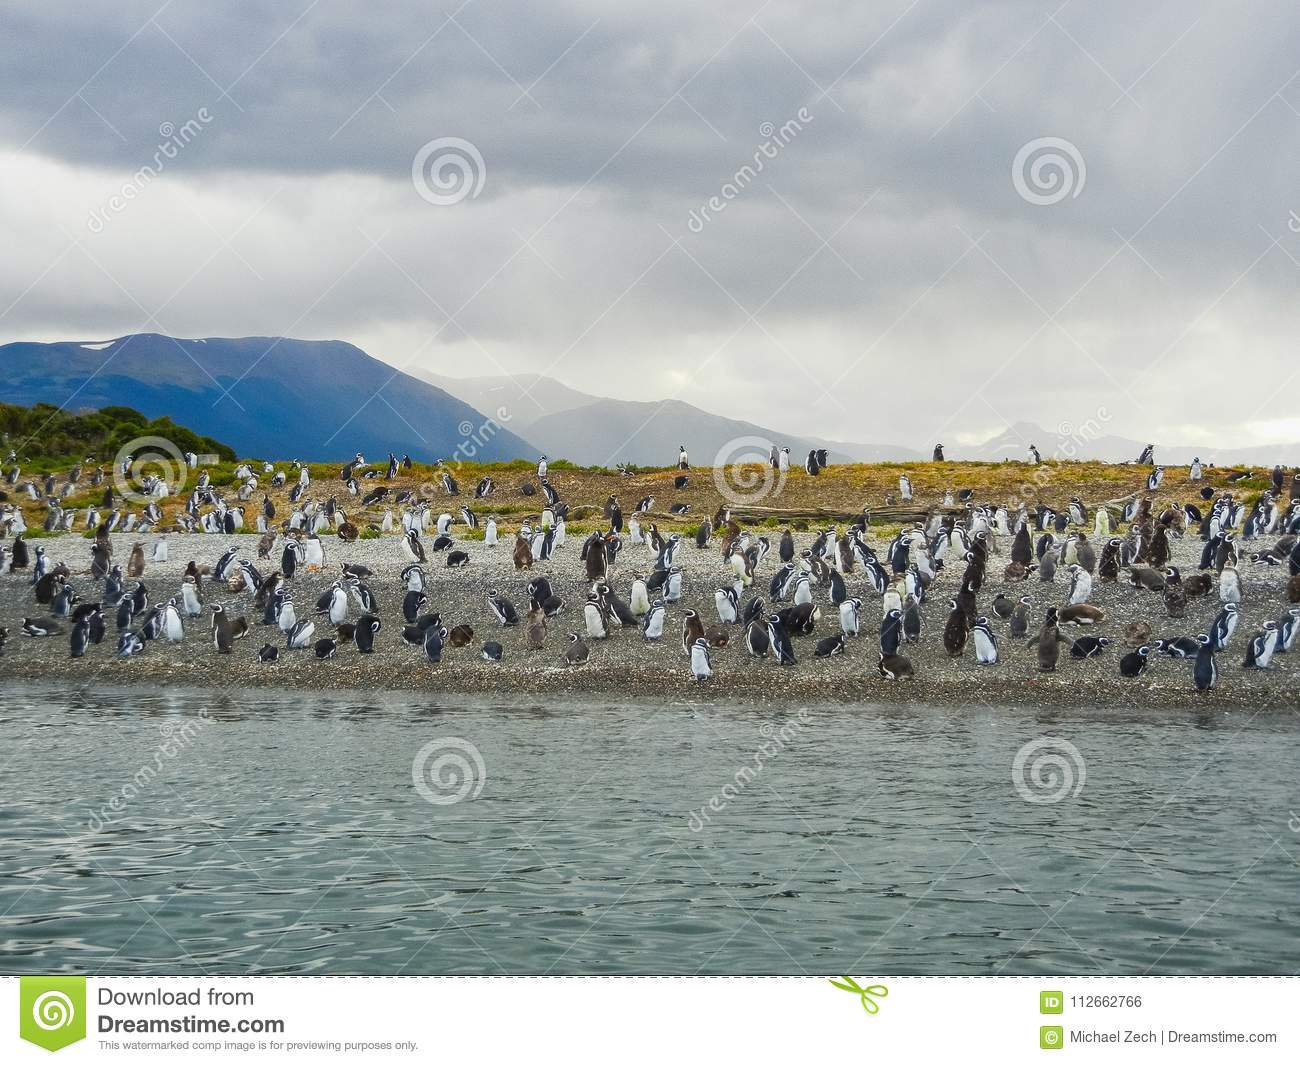 The magellanic penguins on the islands of tierra del fuego patagonia